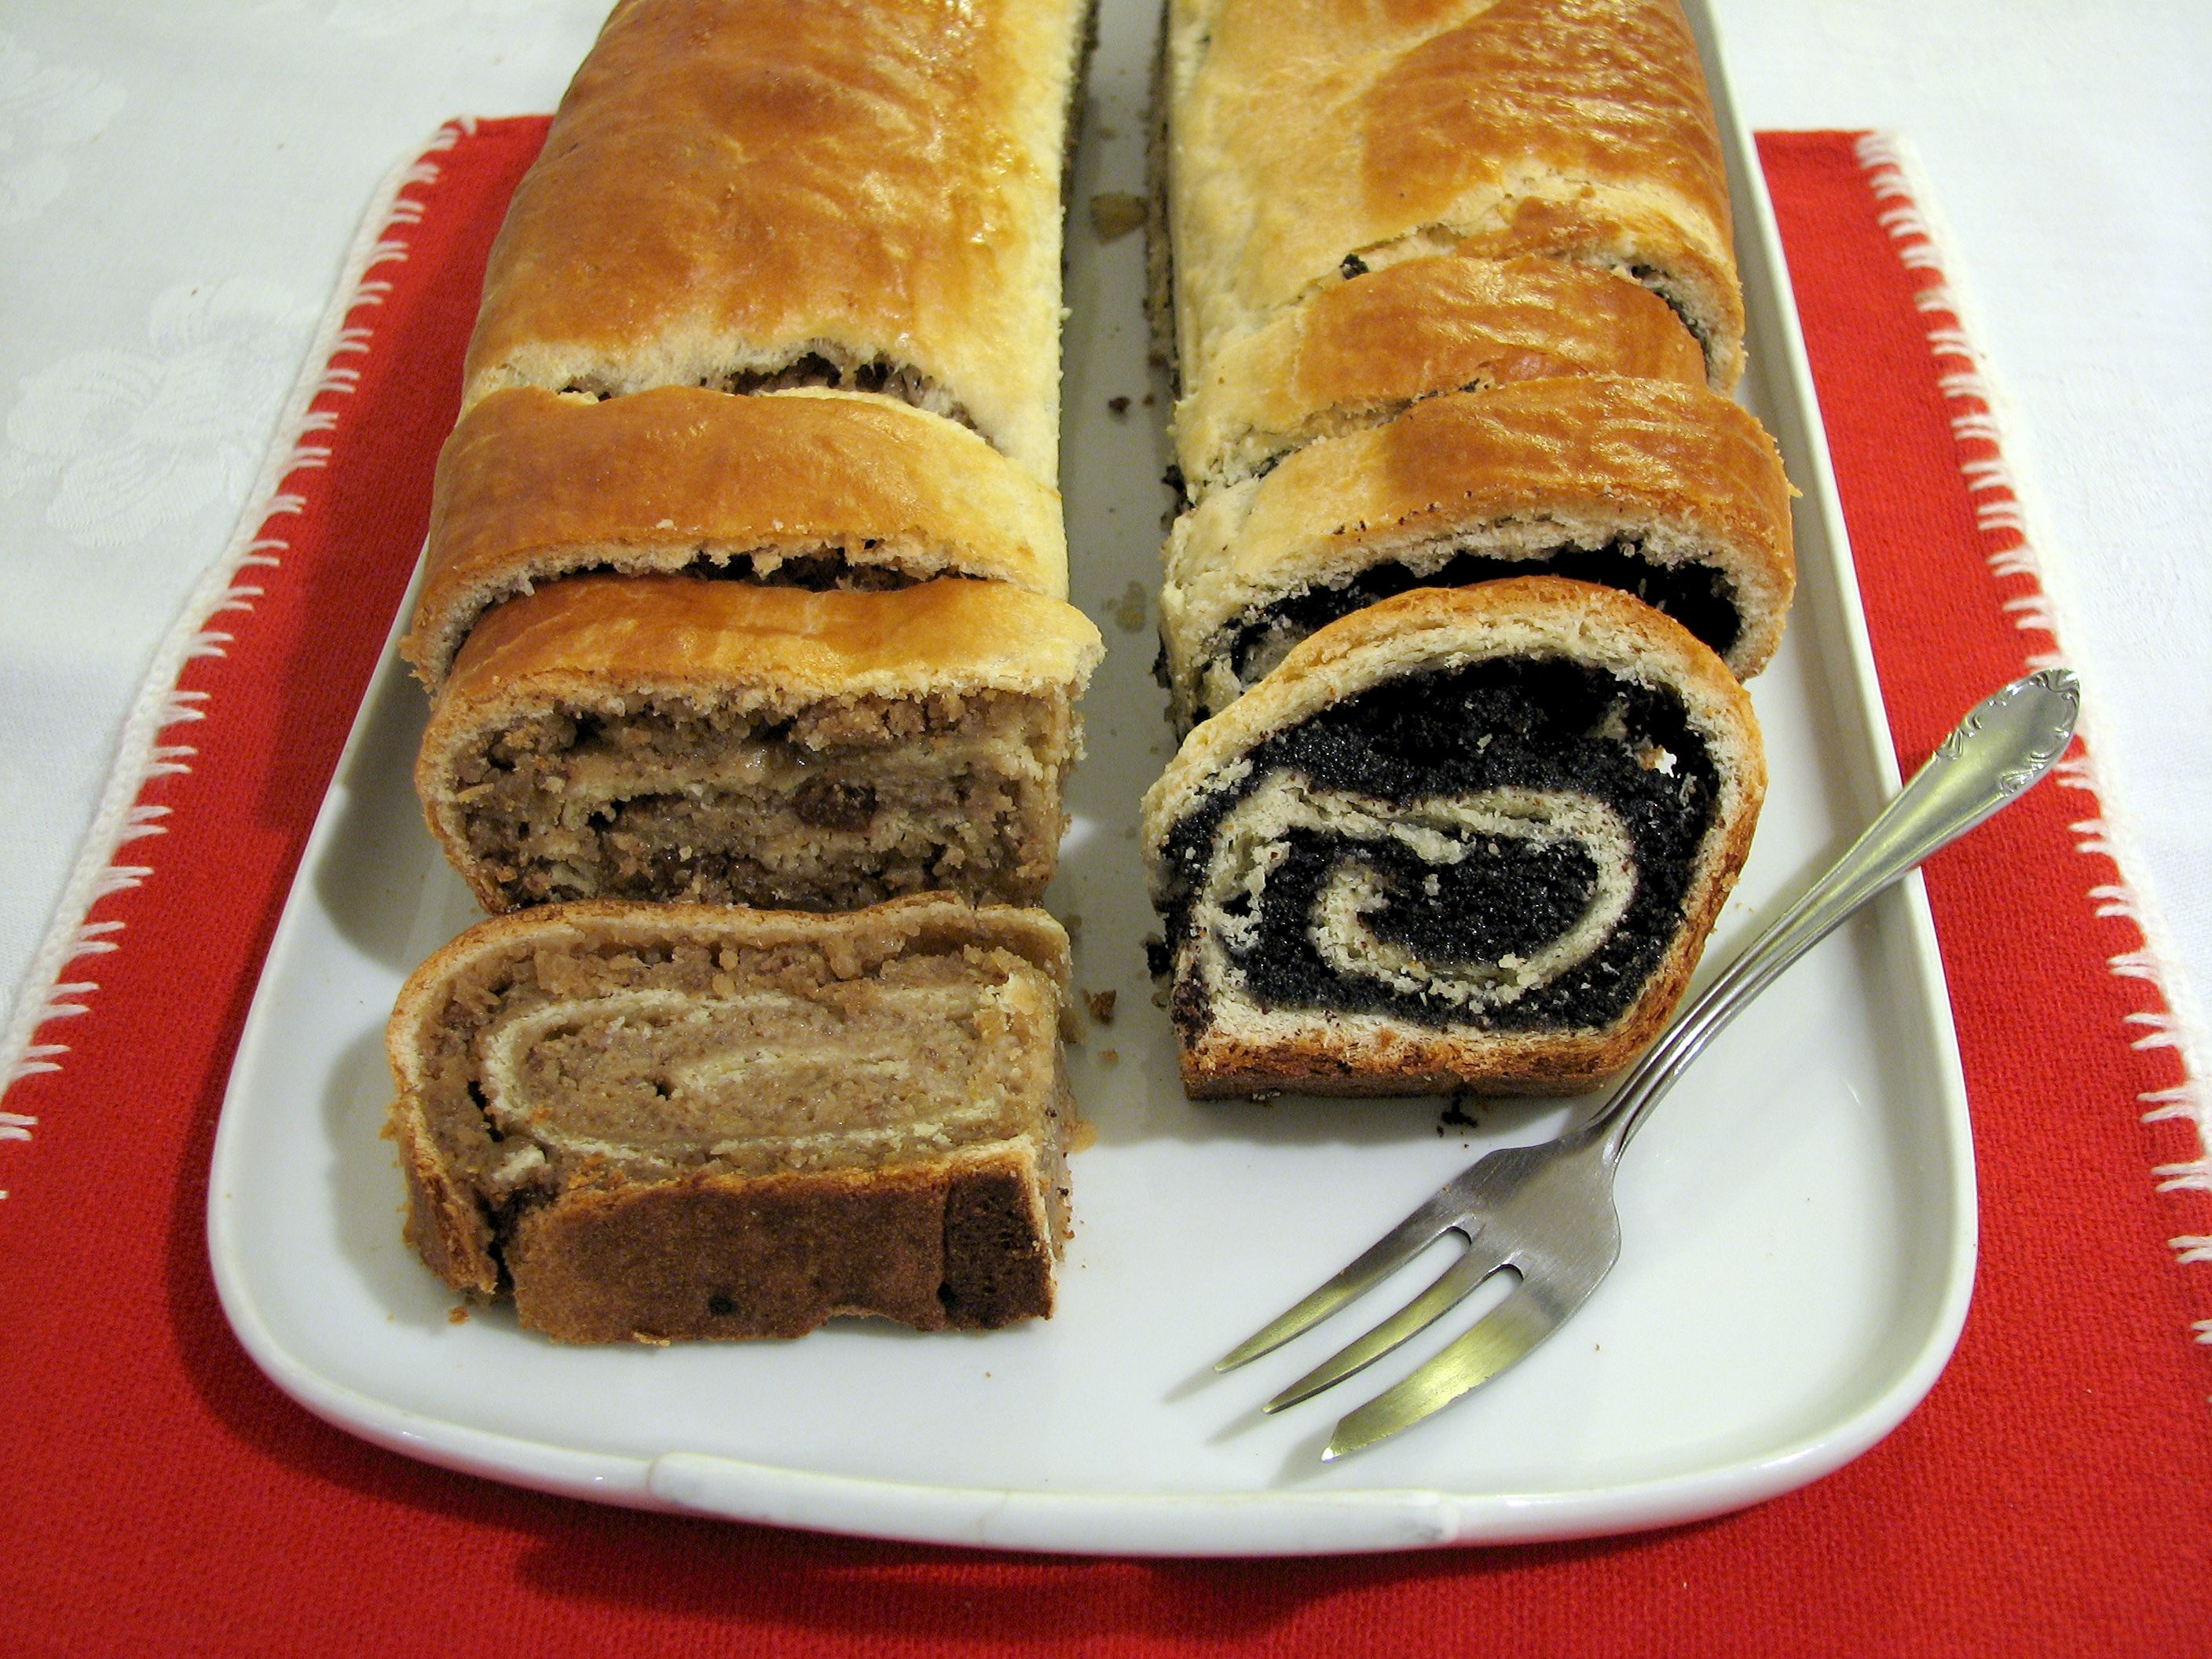 Ungarische Küche Walnut And Poppy Seed Pastry Delicious With Powdered